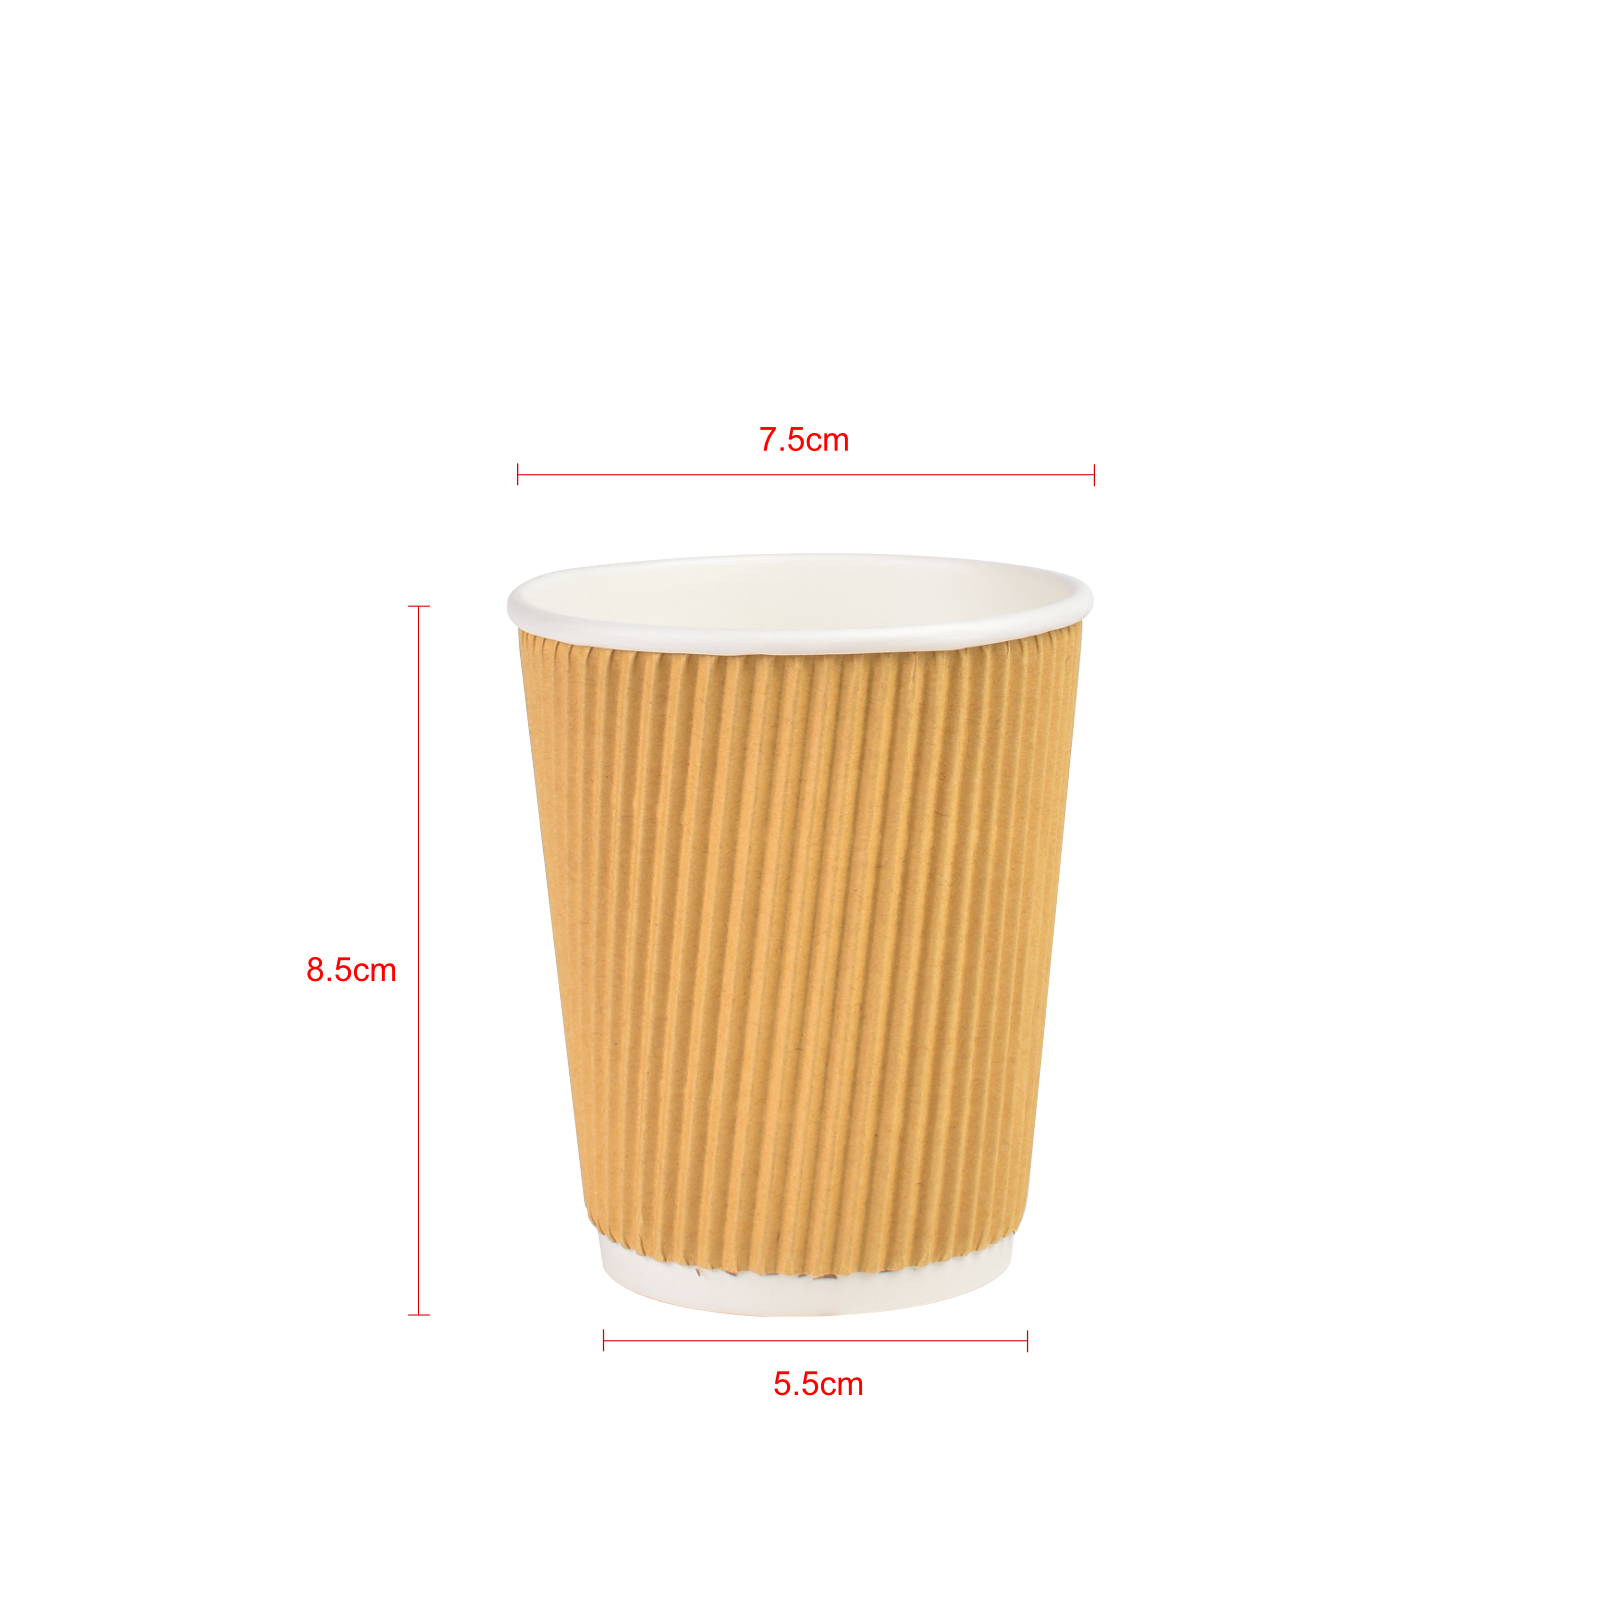 8OZ Double Wall Ripple Hot Cup - Brown 25pcs  RM 7.50.png